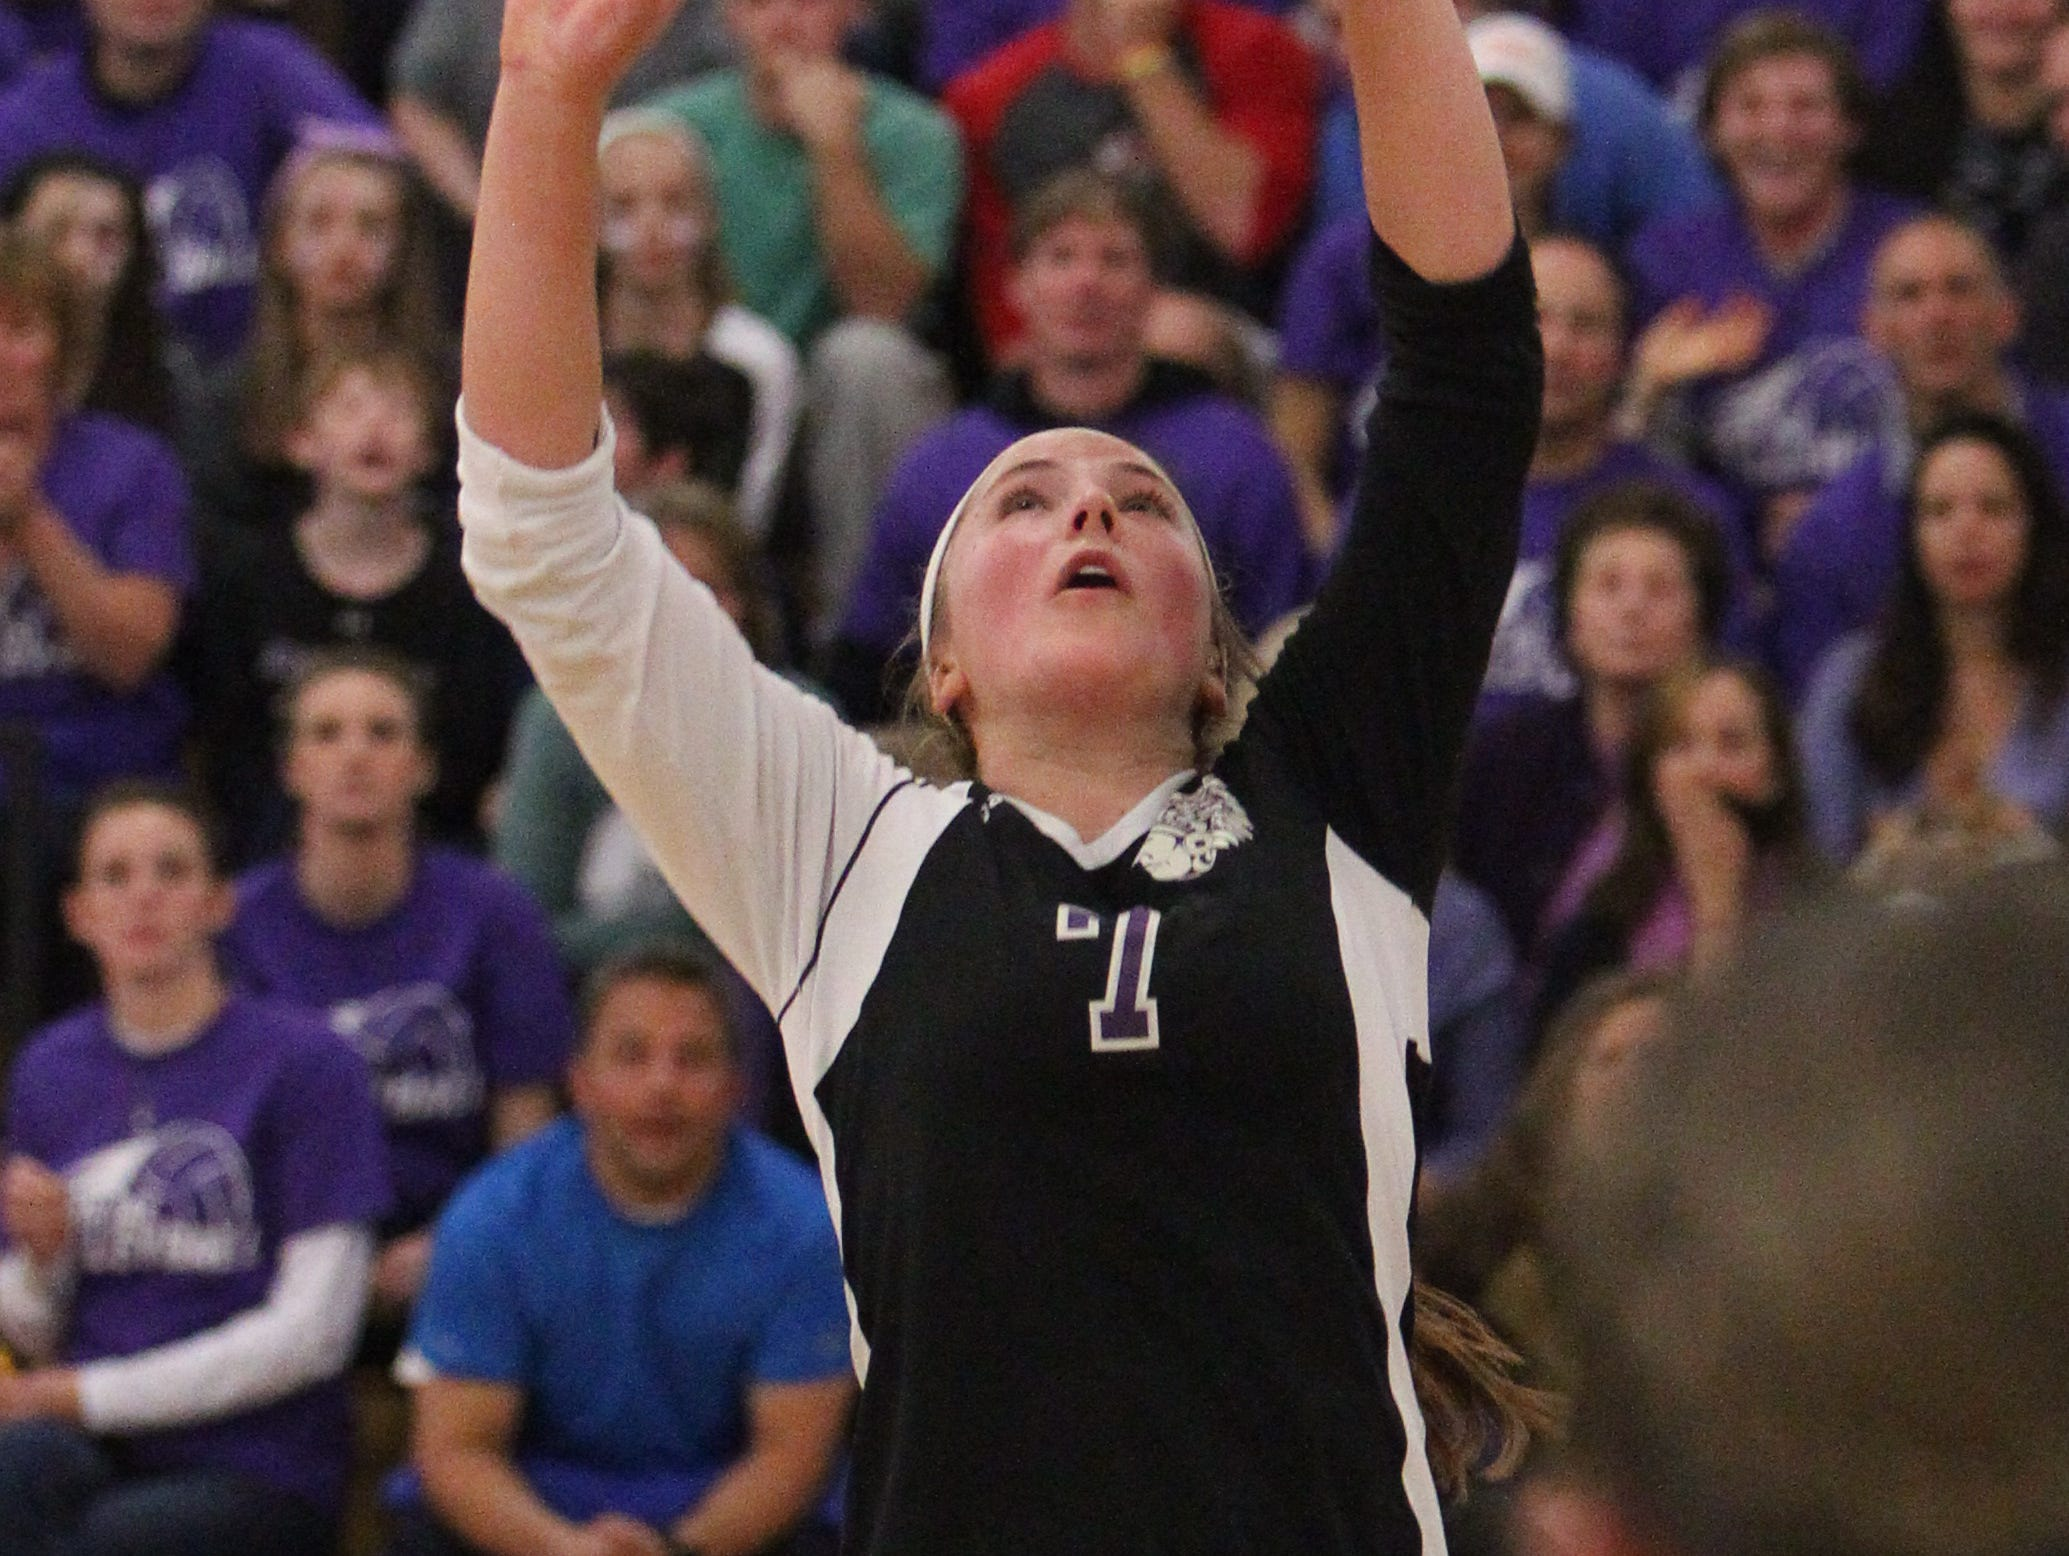 John Jay Cross River beat Yorktown in five games in the Class A Section 1 volleyball final at Croton-Harmon Nov. 1, 2014.